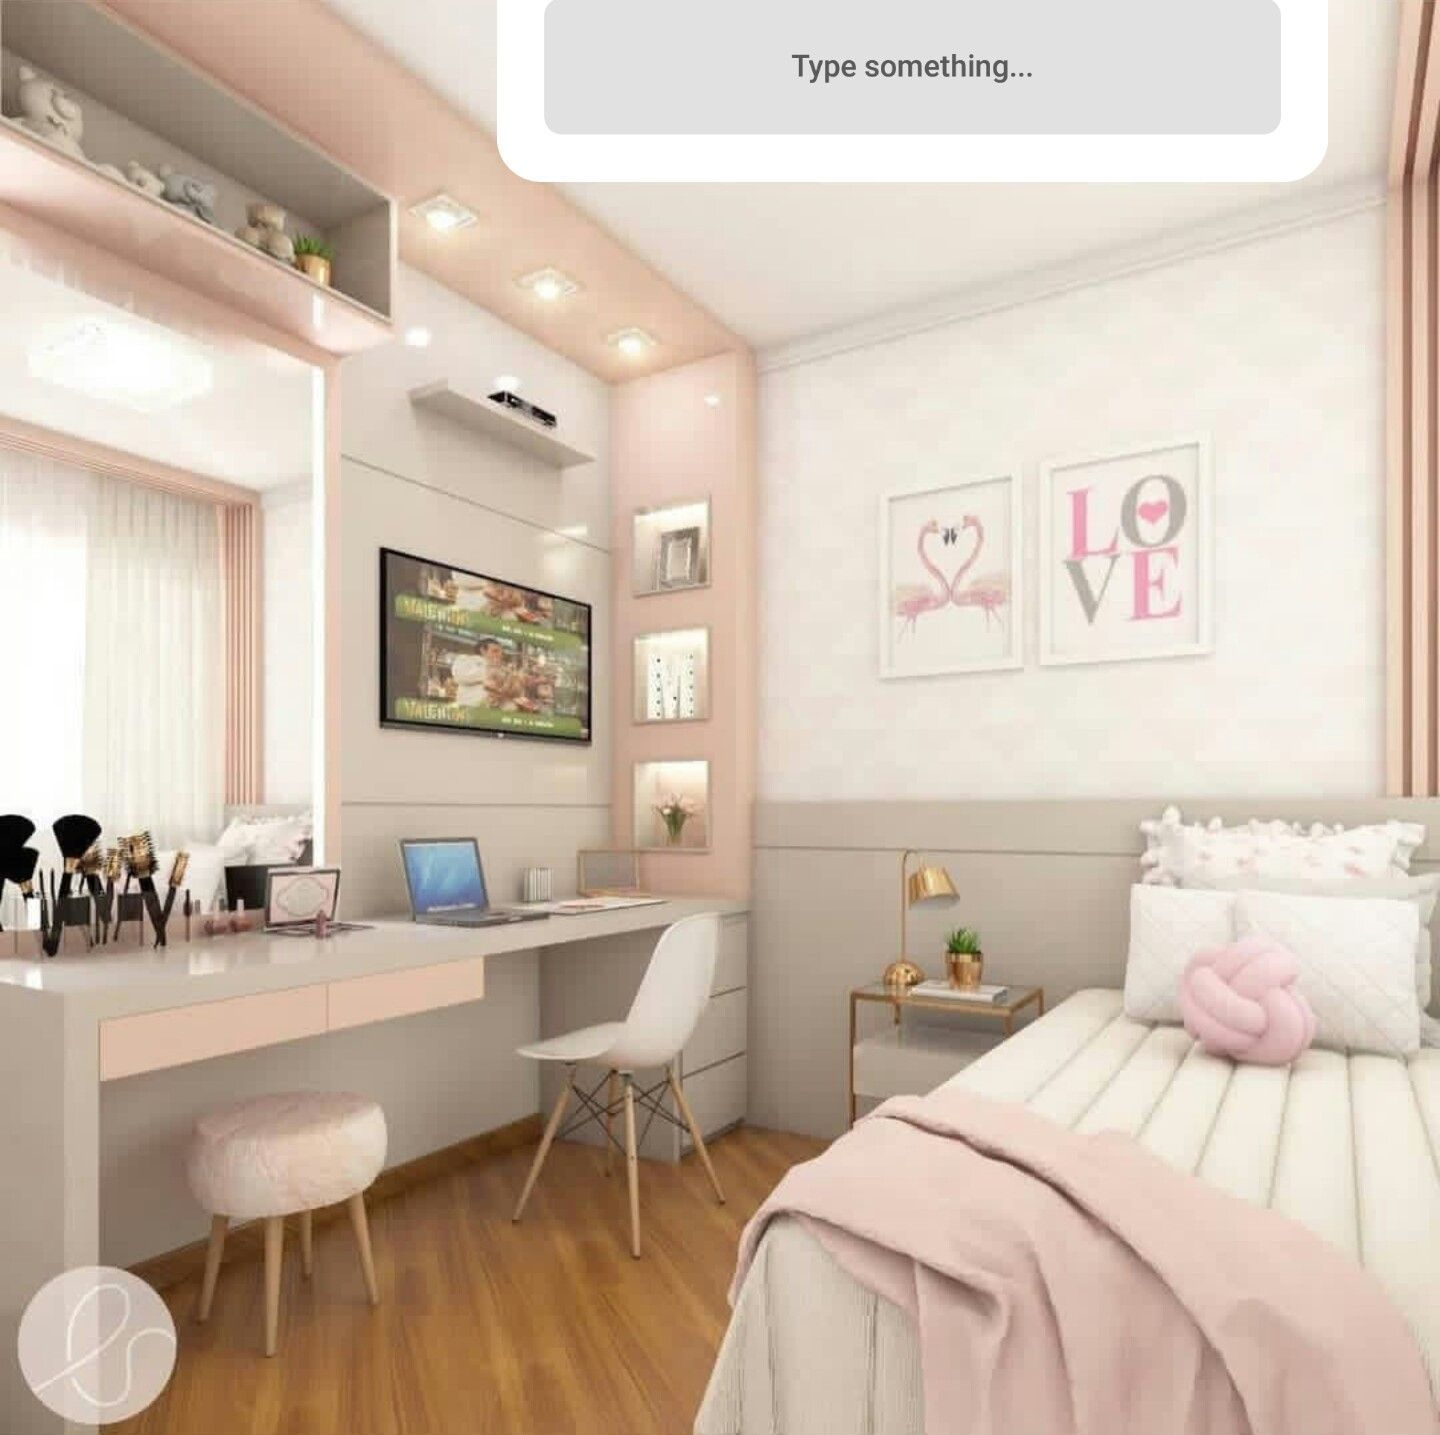 Girls Bedroom Ideas 8 Year Old Girls Bedroom Ideas Bedroom Decorating Tips Room Ideas Bedroom Small Room Bedroom